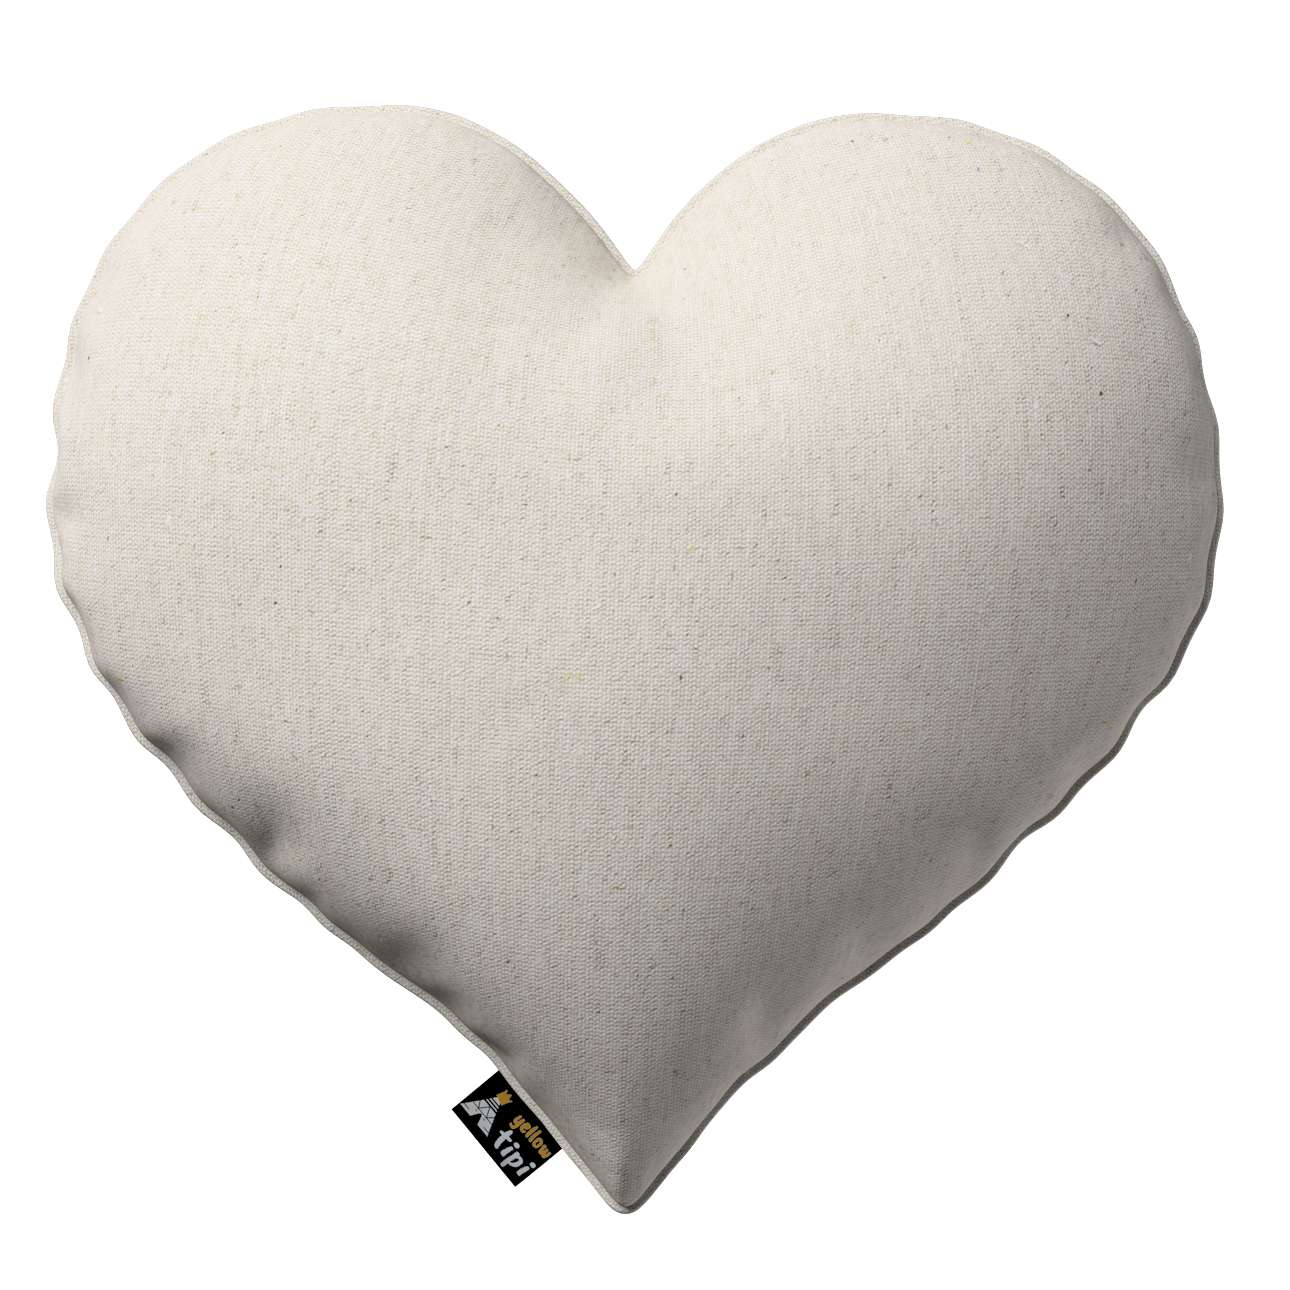 Kissen Heart of Love von der Kollektion Happiness, Stoff: 133-65